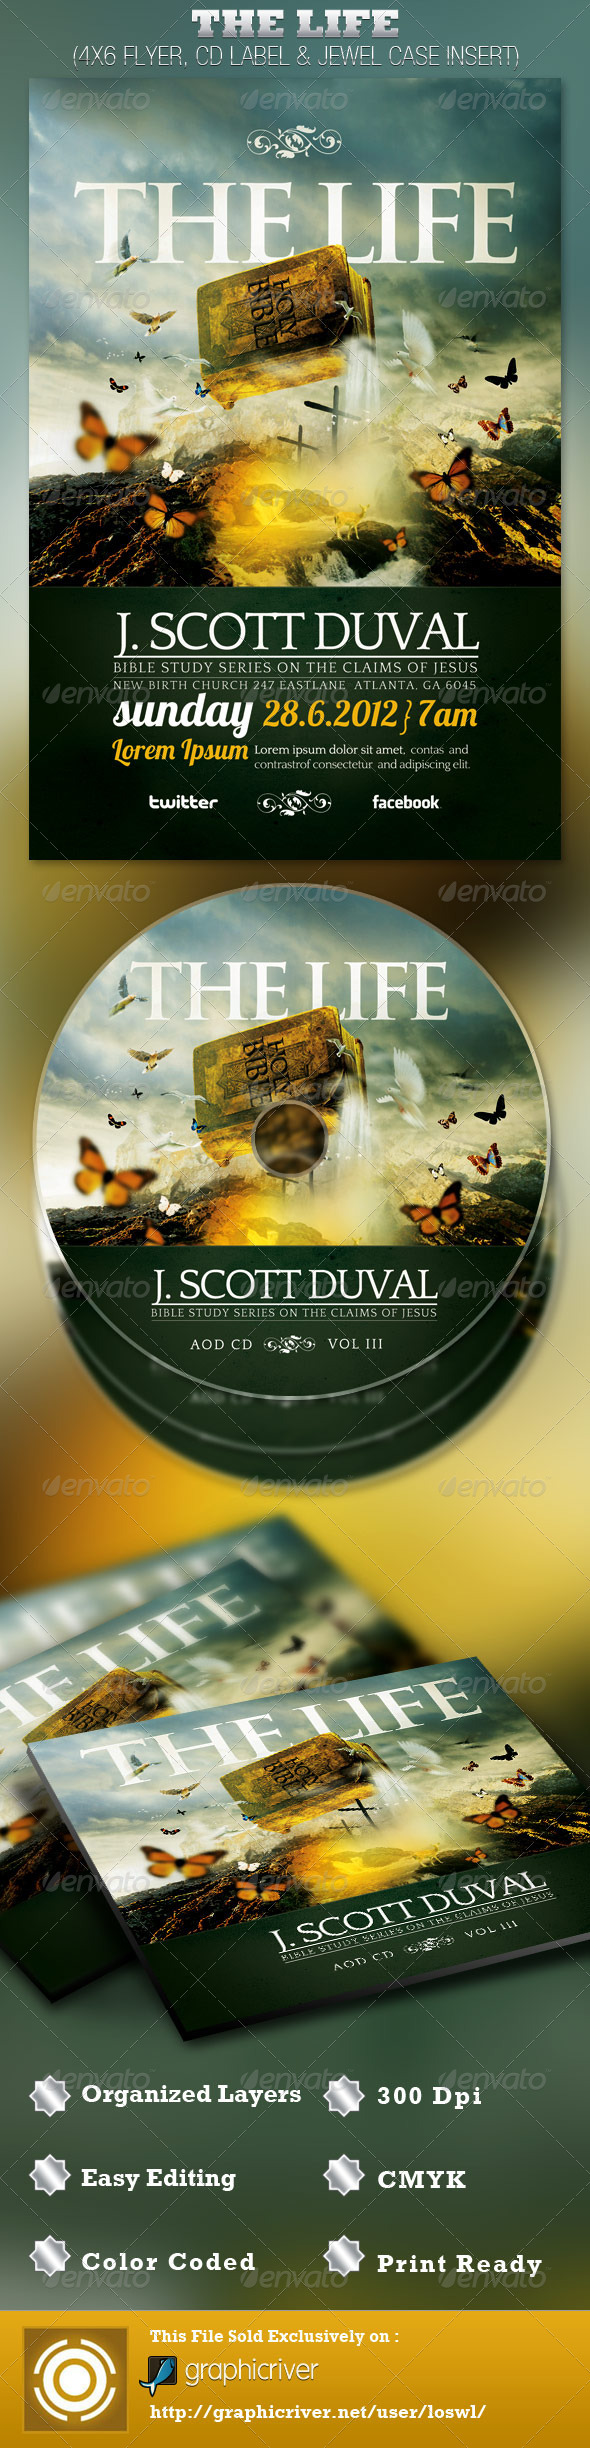 GraphicRiver The Life Church Flyer and CD Template 2527105